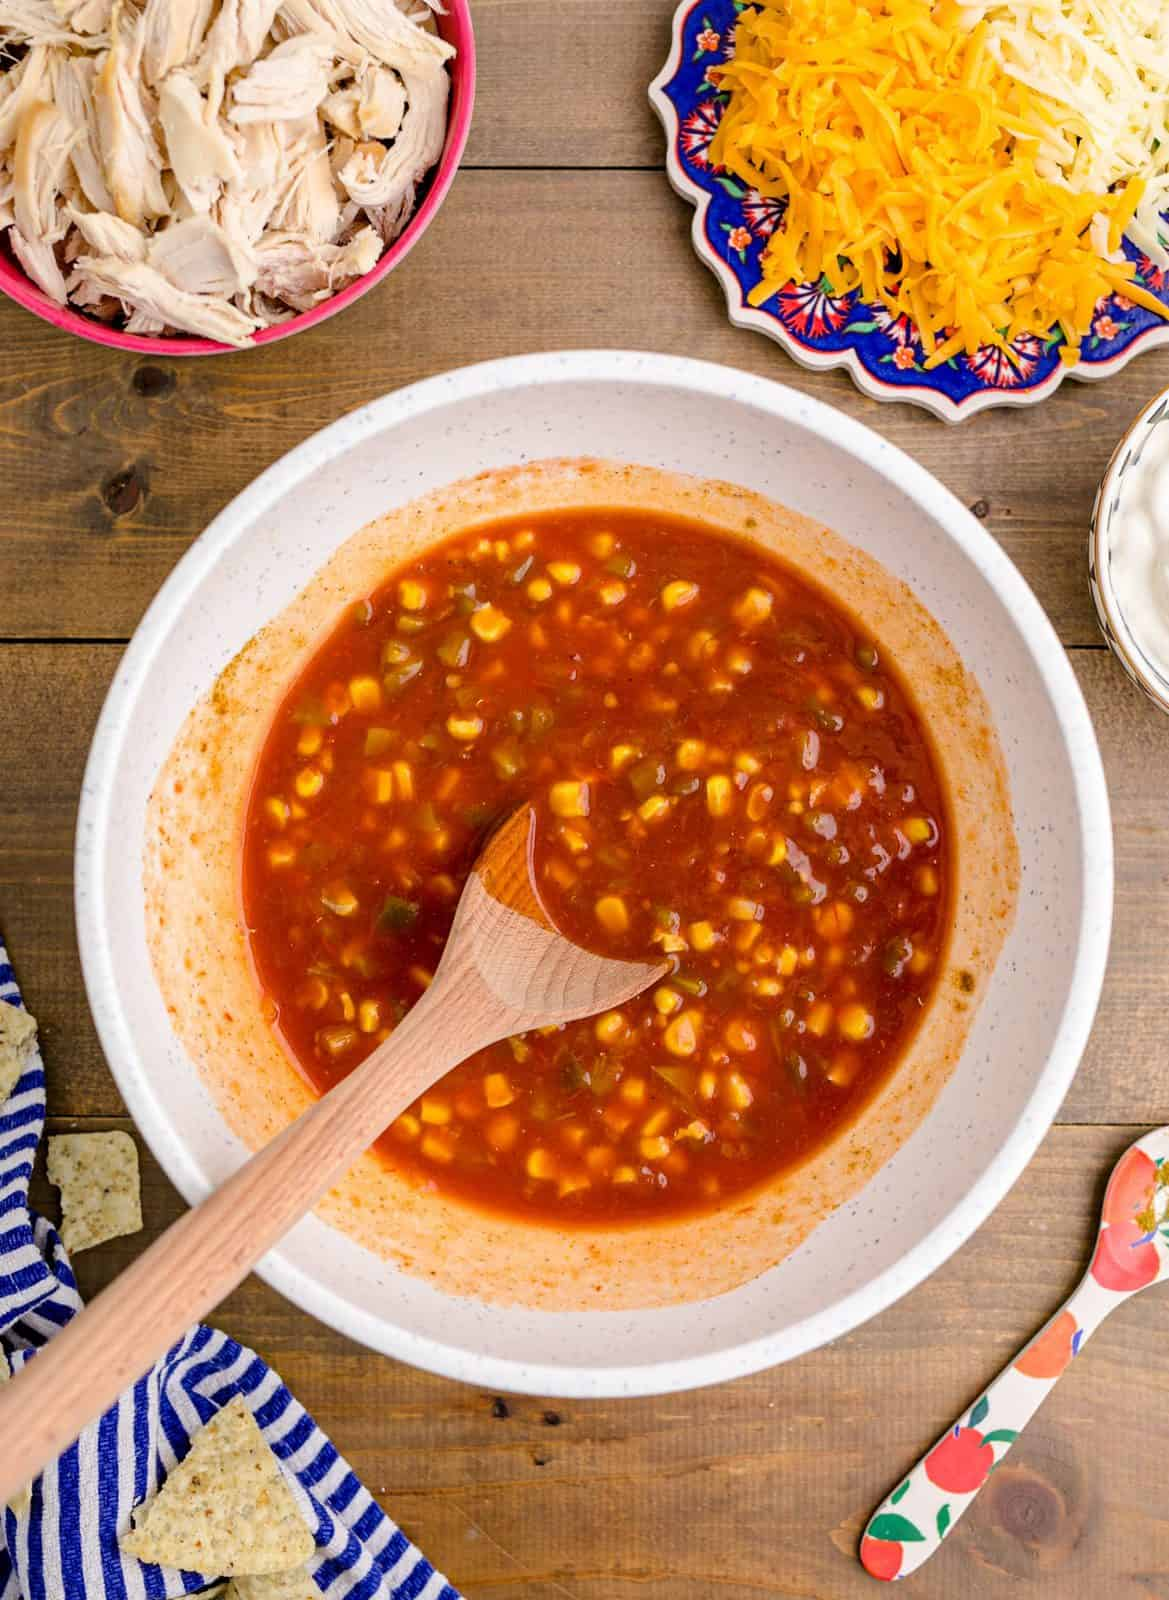 Enchilada sauce, drained green chilis, salsa, thawed corn, cumin, salt, and pepper added to white bowl and mixed together.